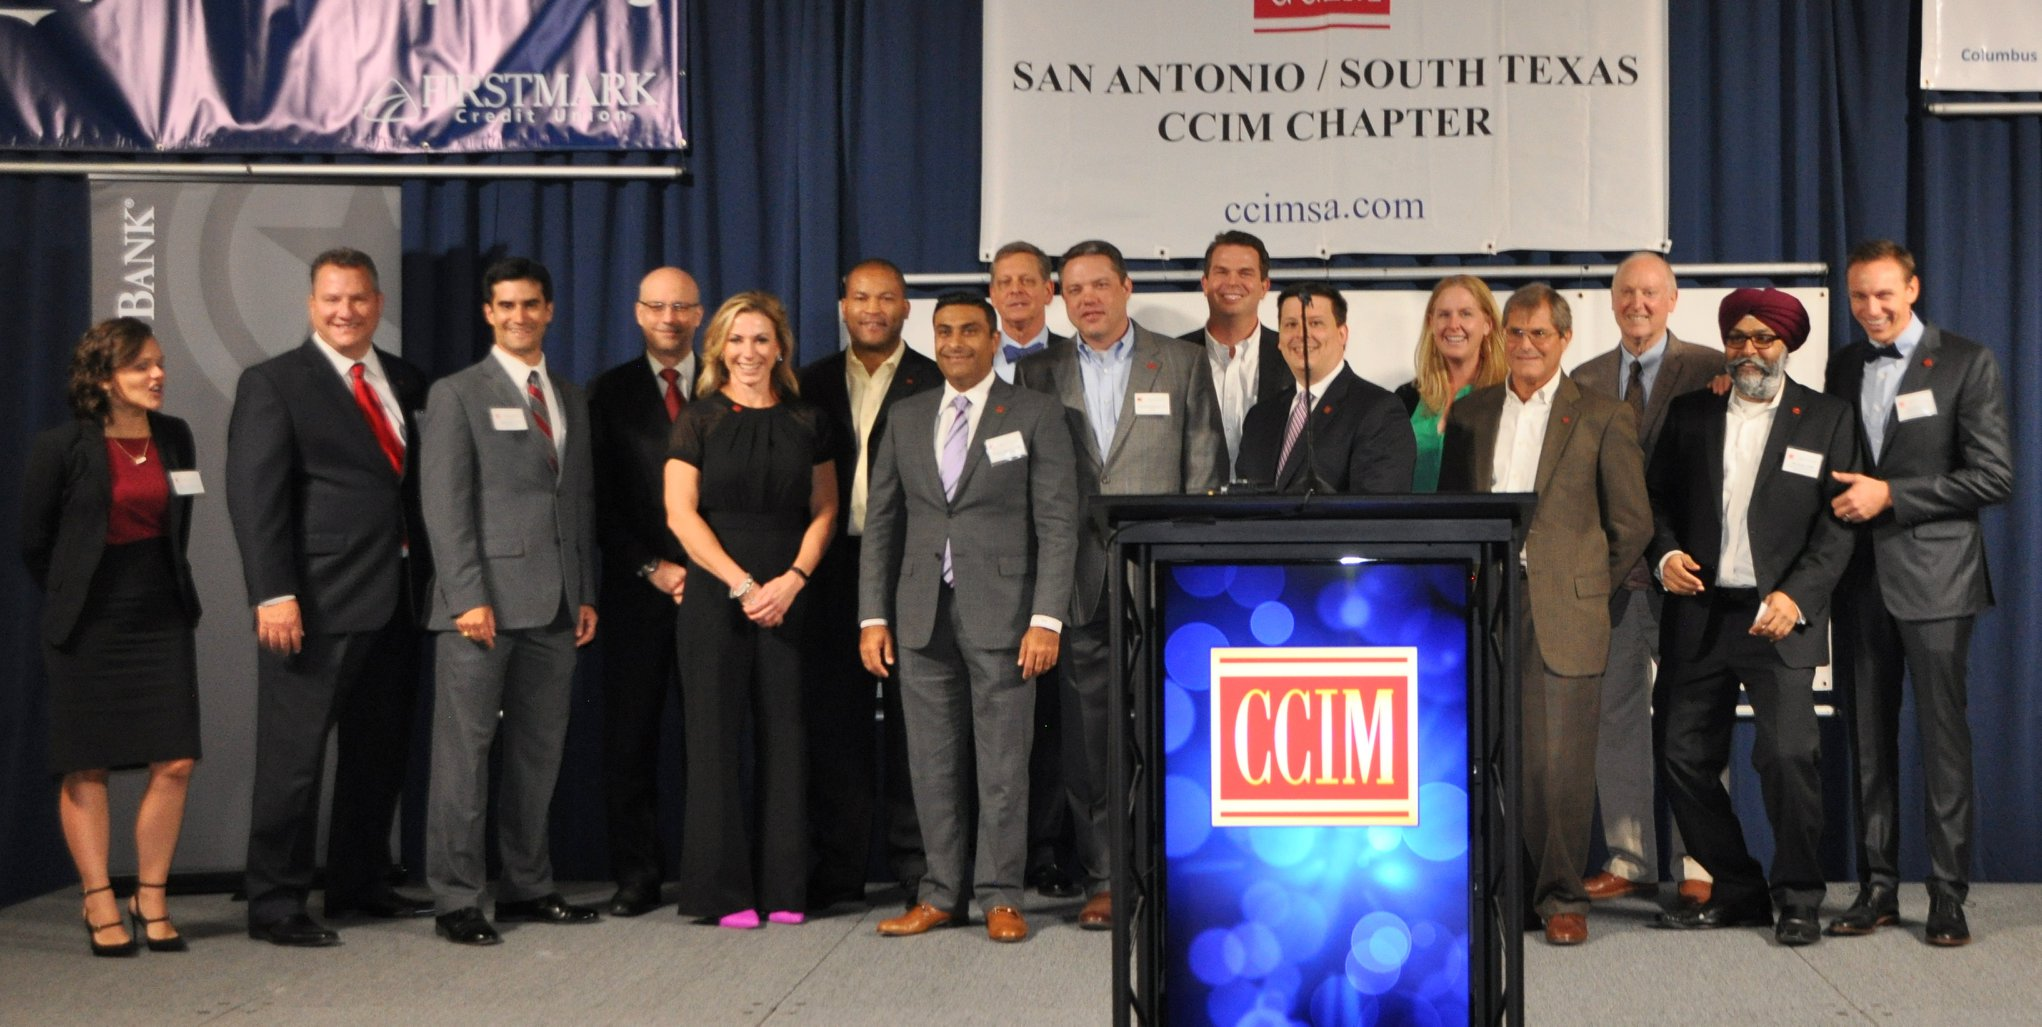 CCIM Symposium Group.jpg